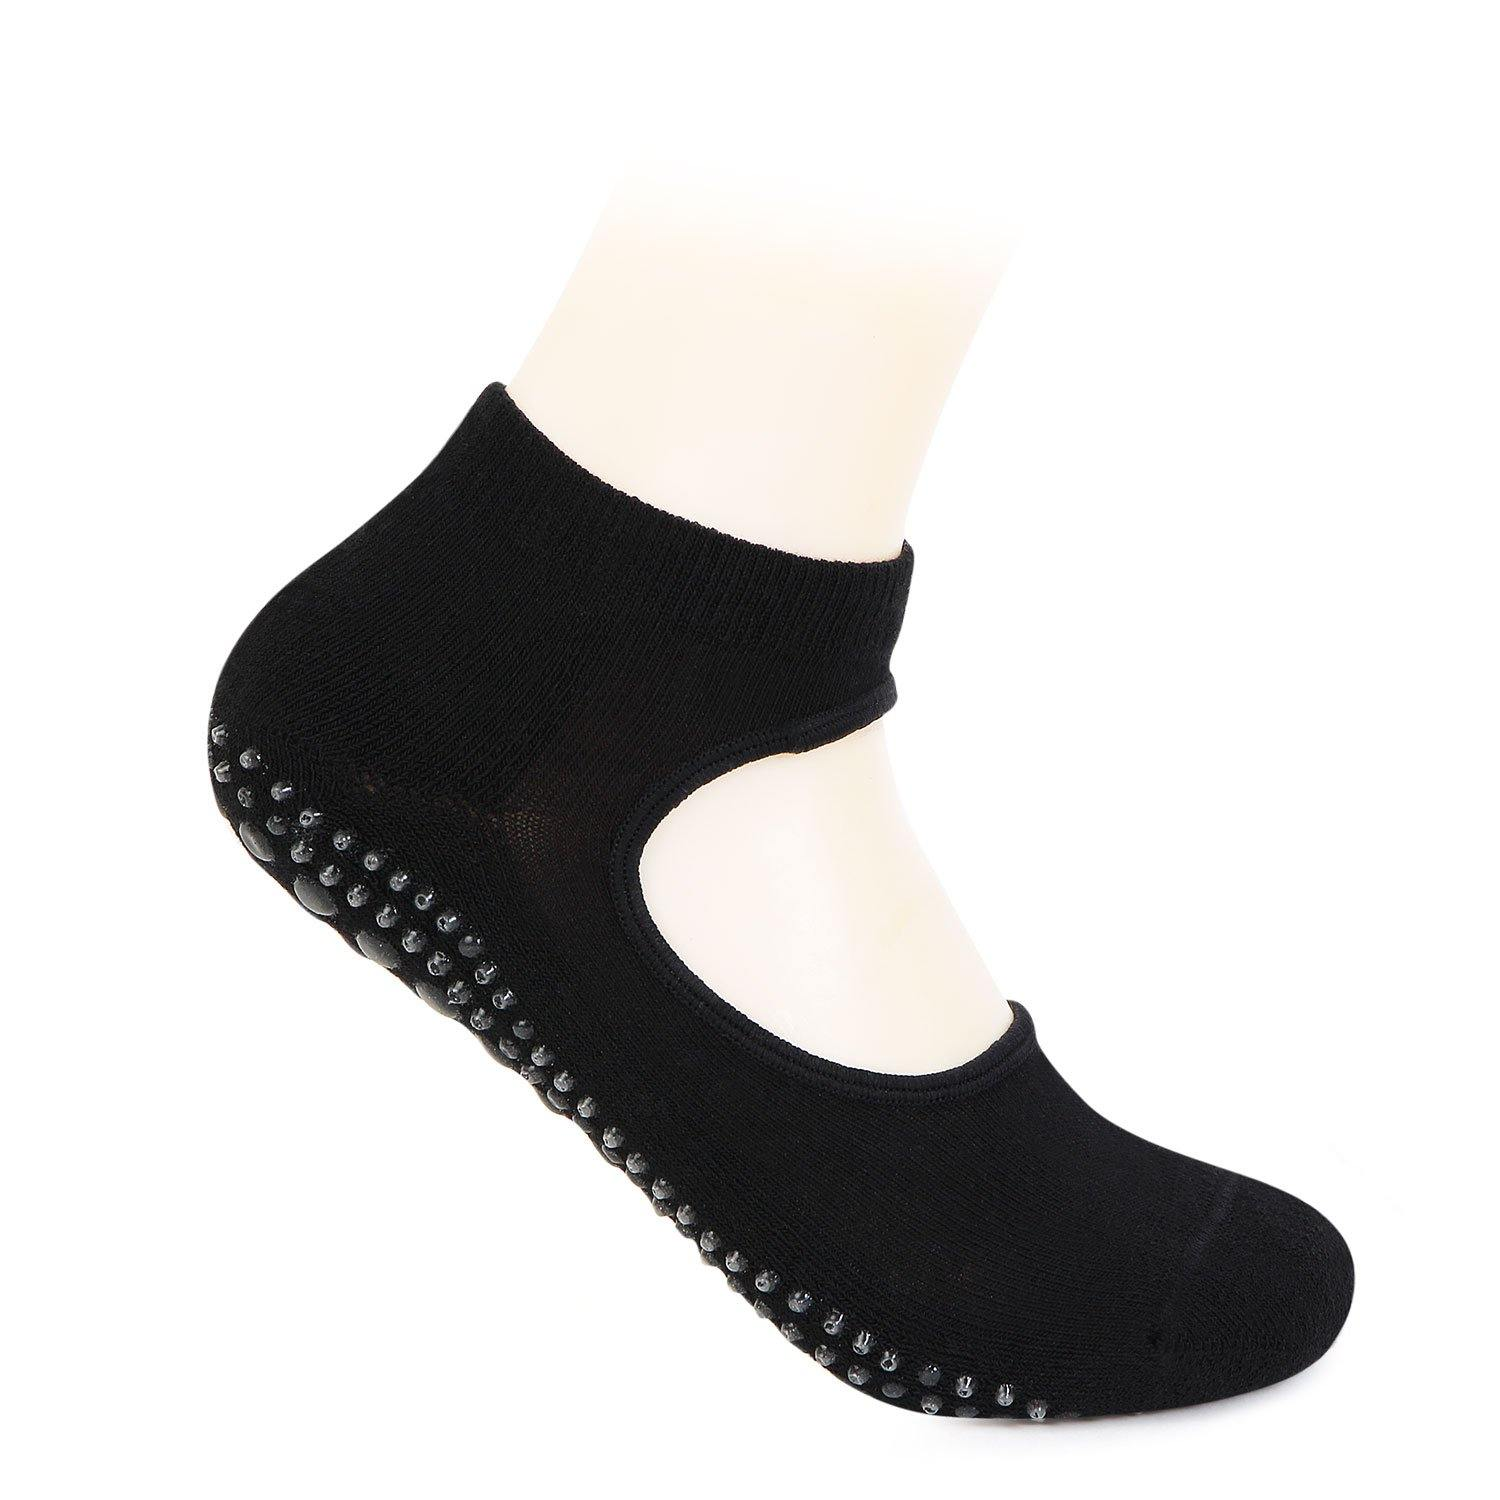 Girls Anti-Skid (Gripper) Yoga Socks